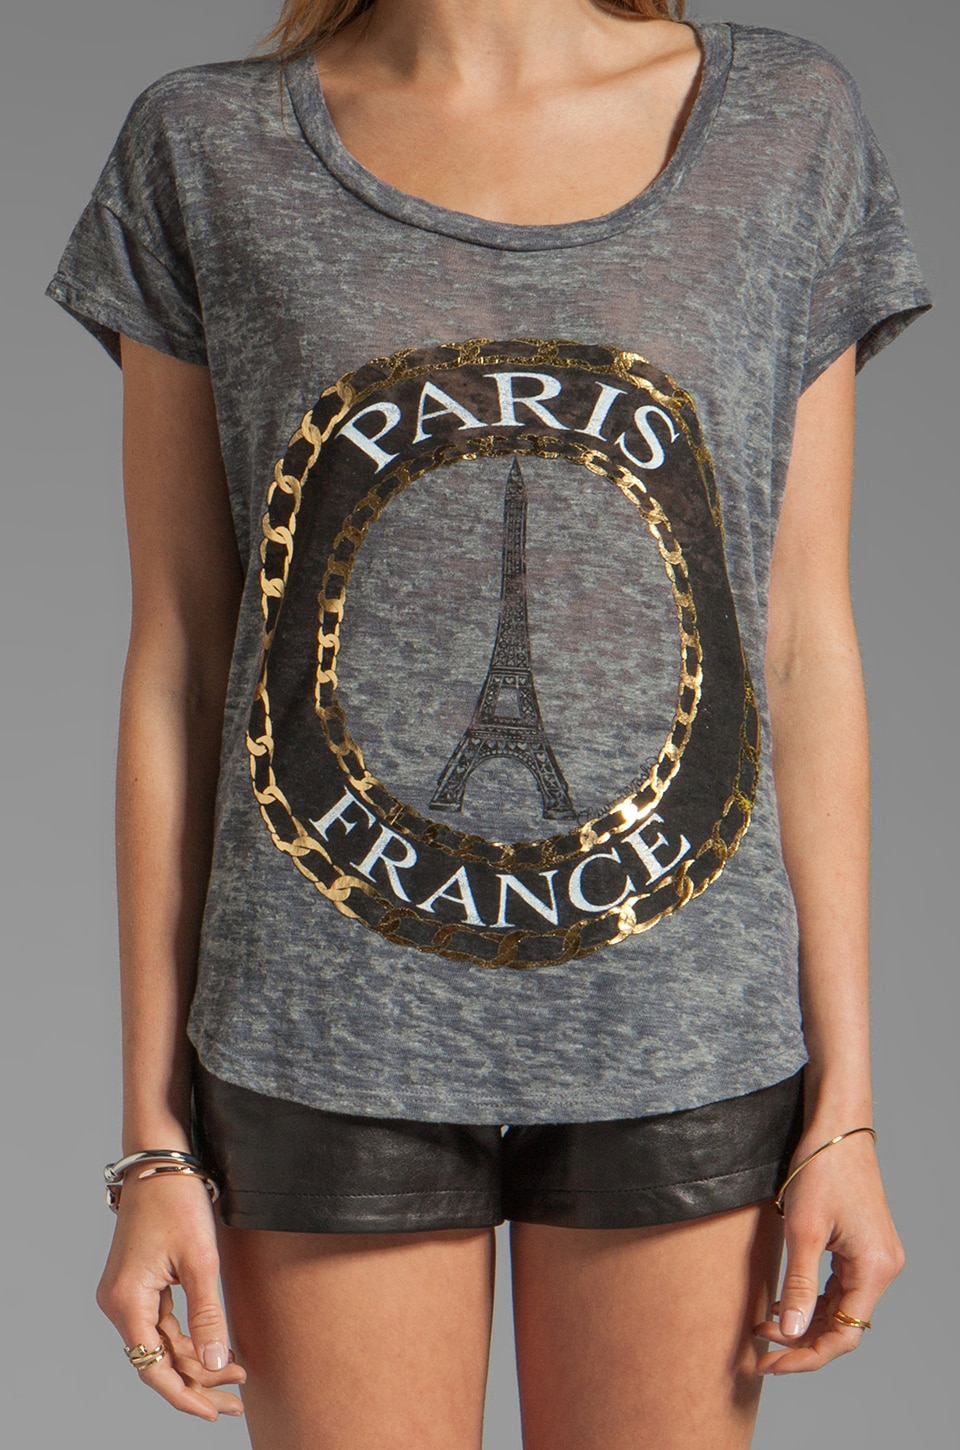 Lauren Moshi Audrey Foil Paris Scoop Tee in Heather Grey